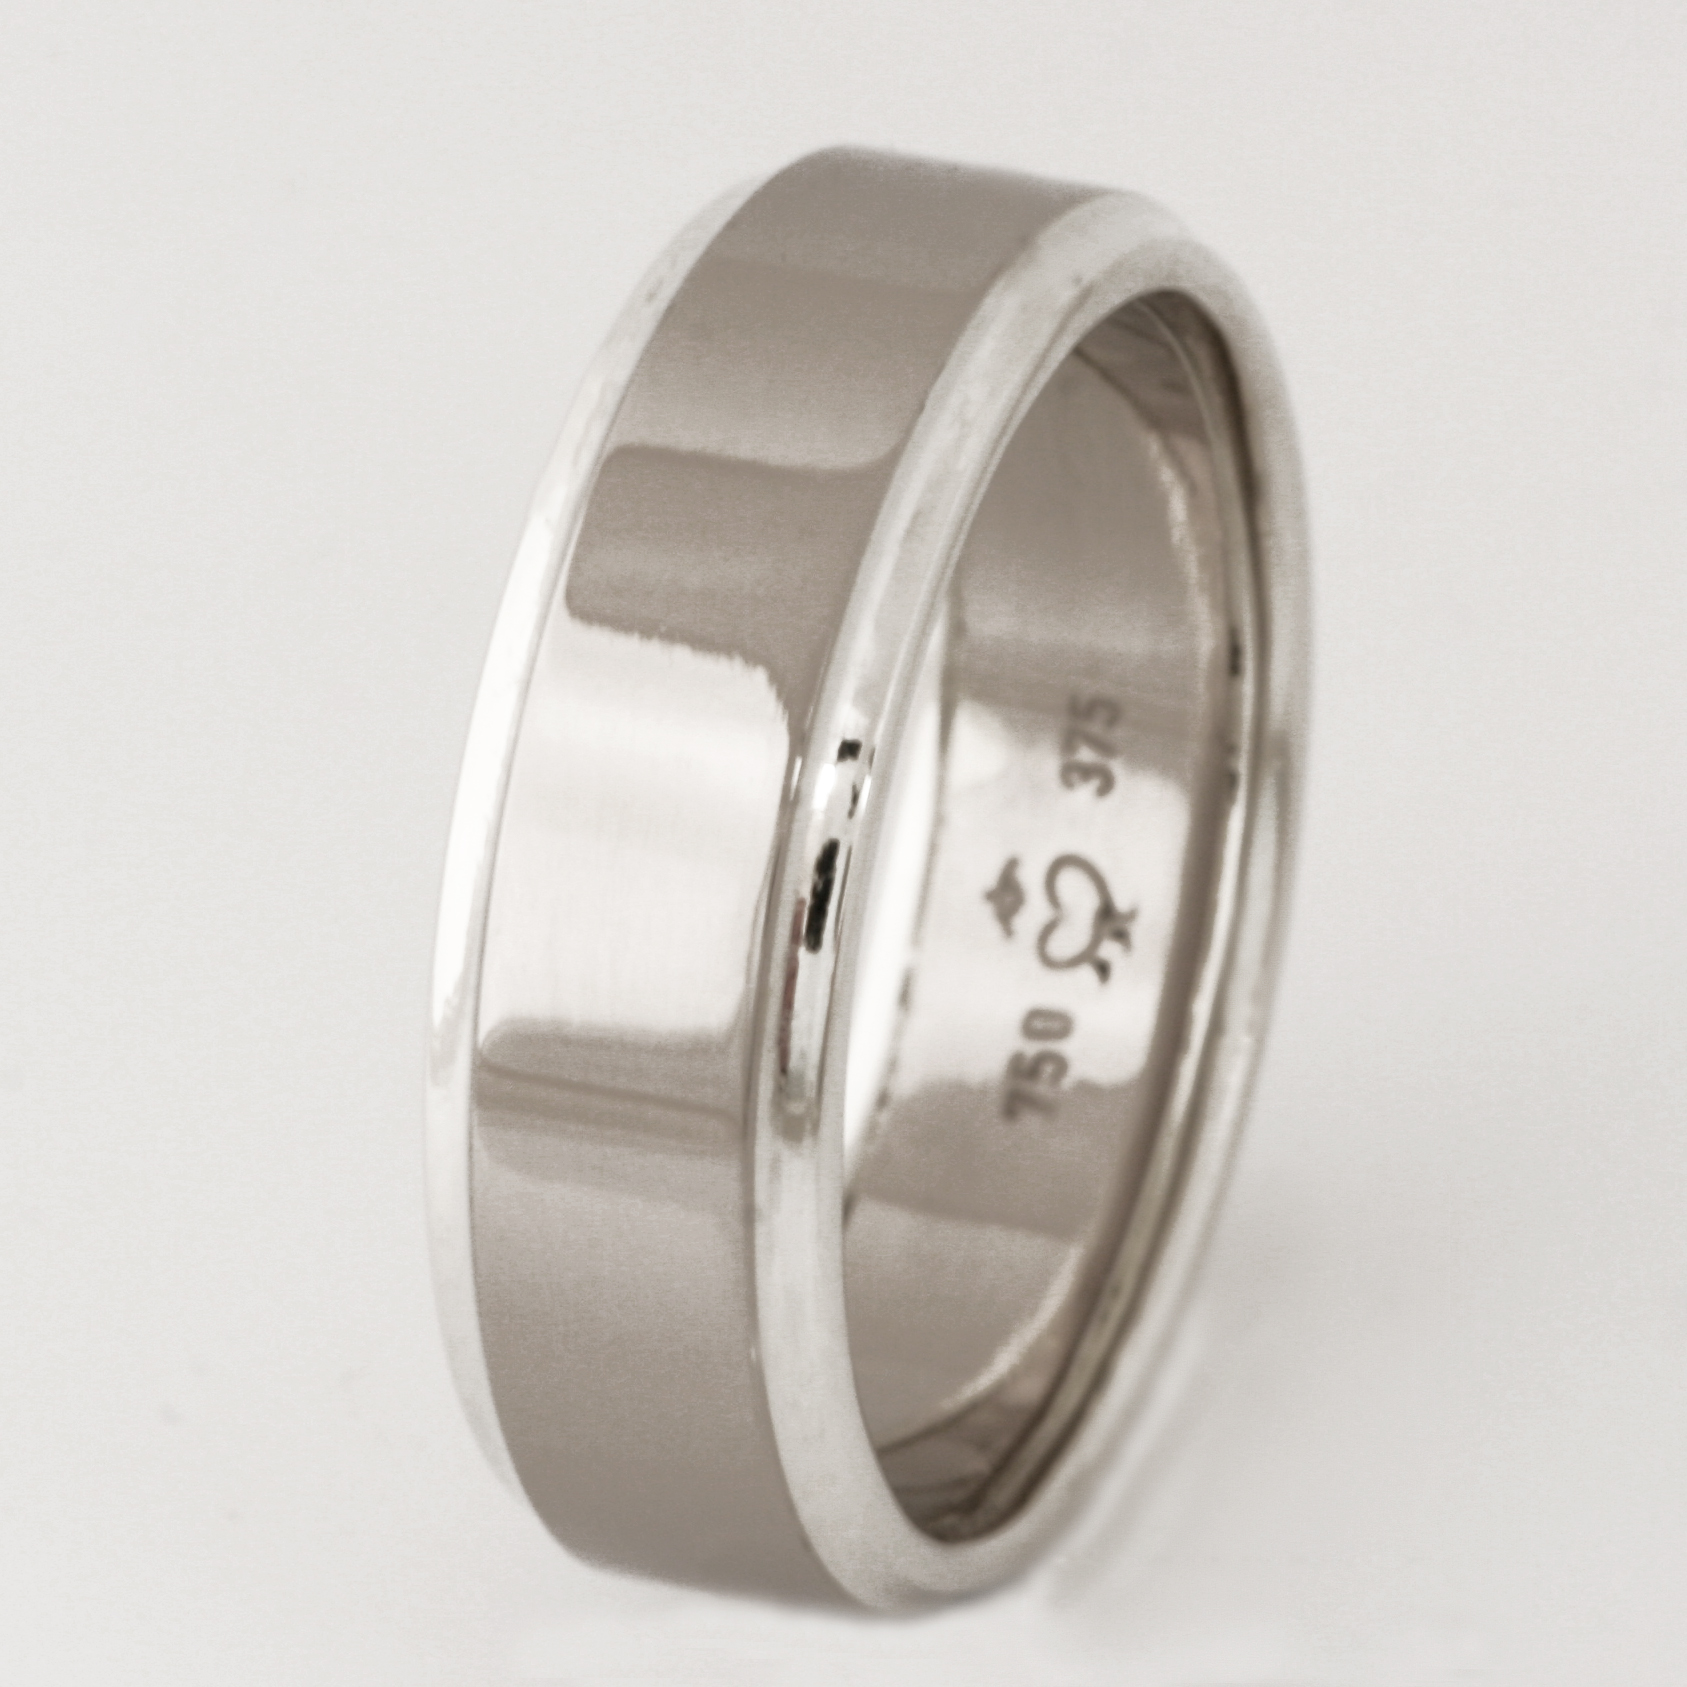 Handmade gents 18ct white gold and 9ct white gold wedding ring